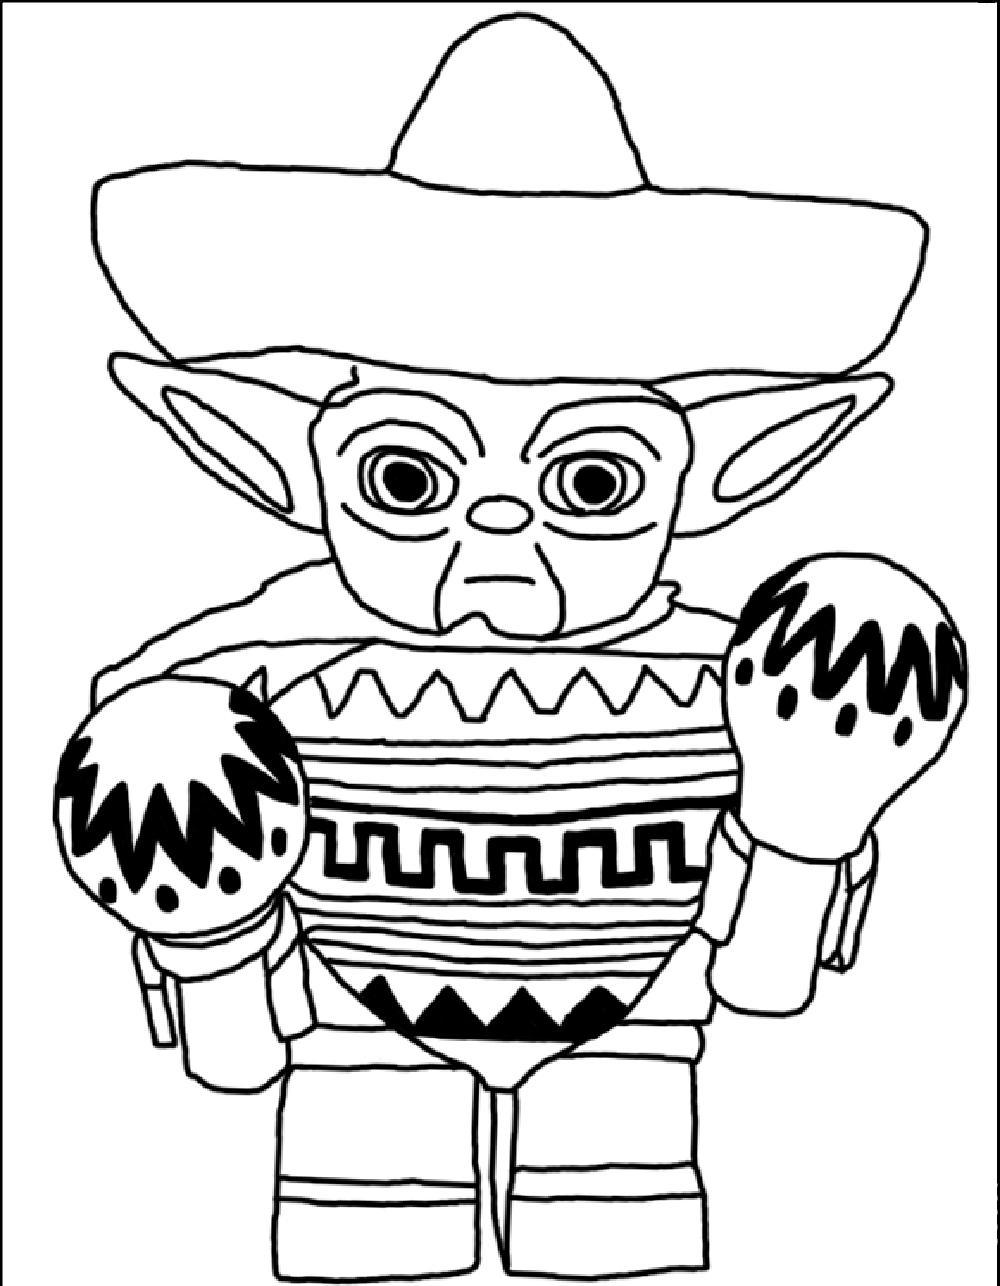 Lego Star Wars Coloring Book Pages